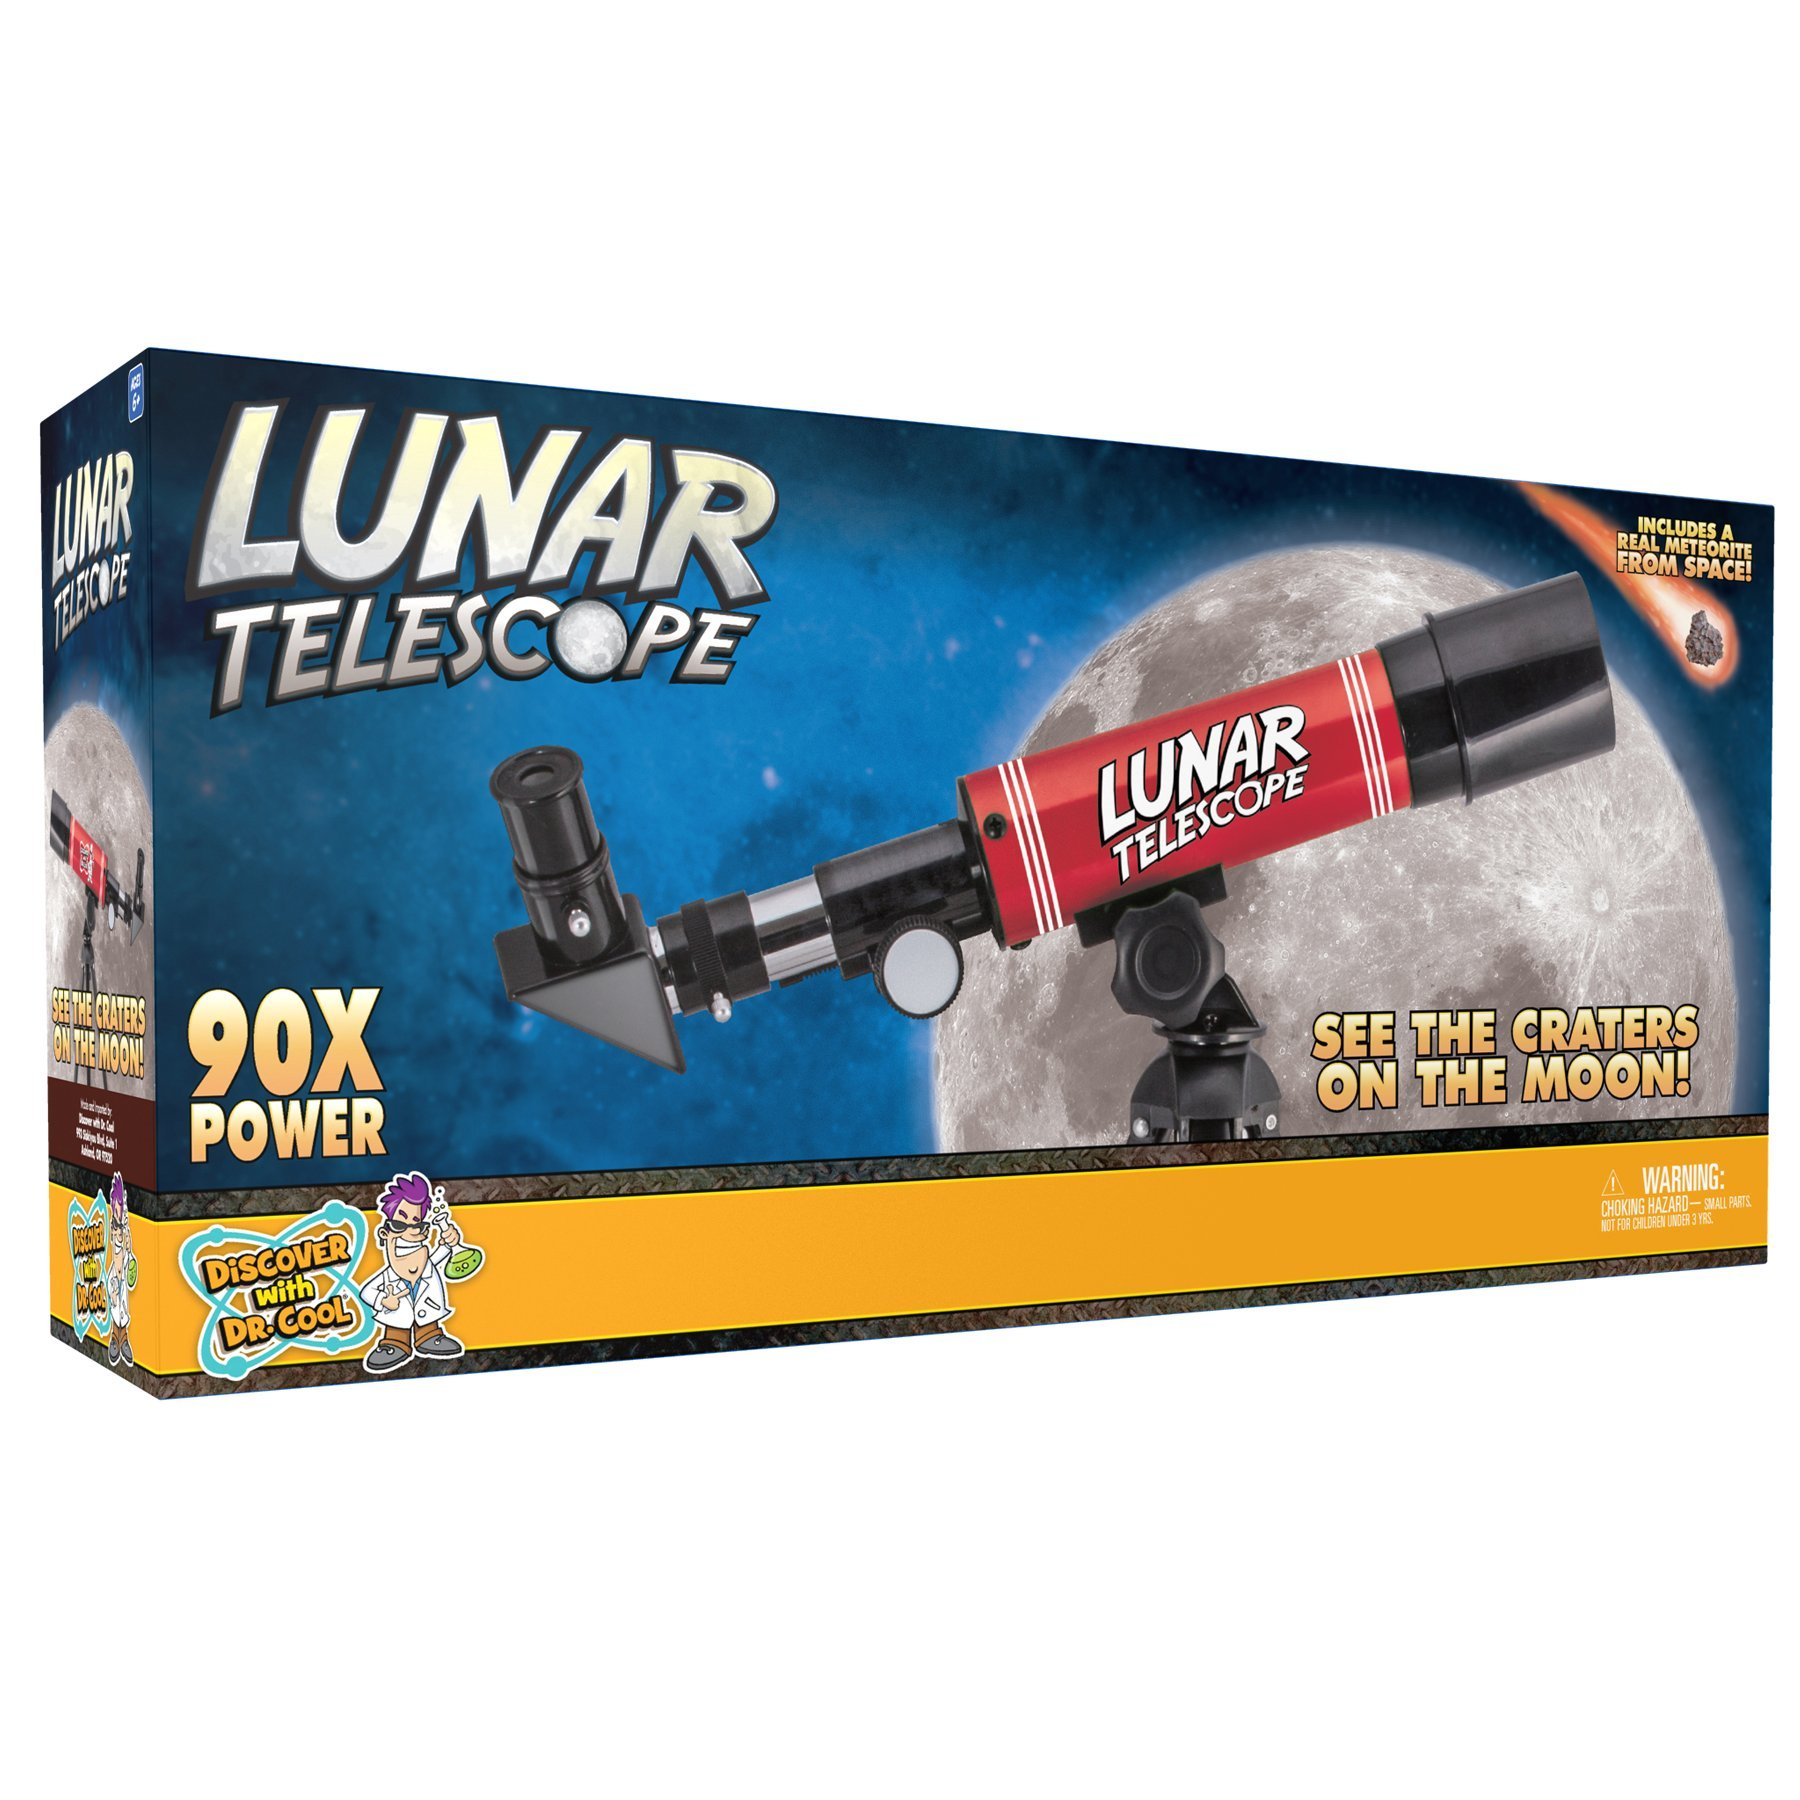 Discover with Dr. Cool Lunar Telescope for Kids – Explore The Moon and its Craters